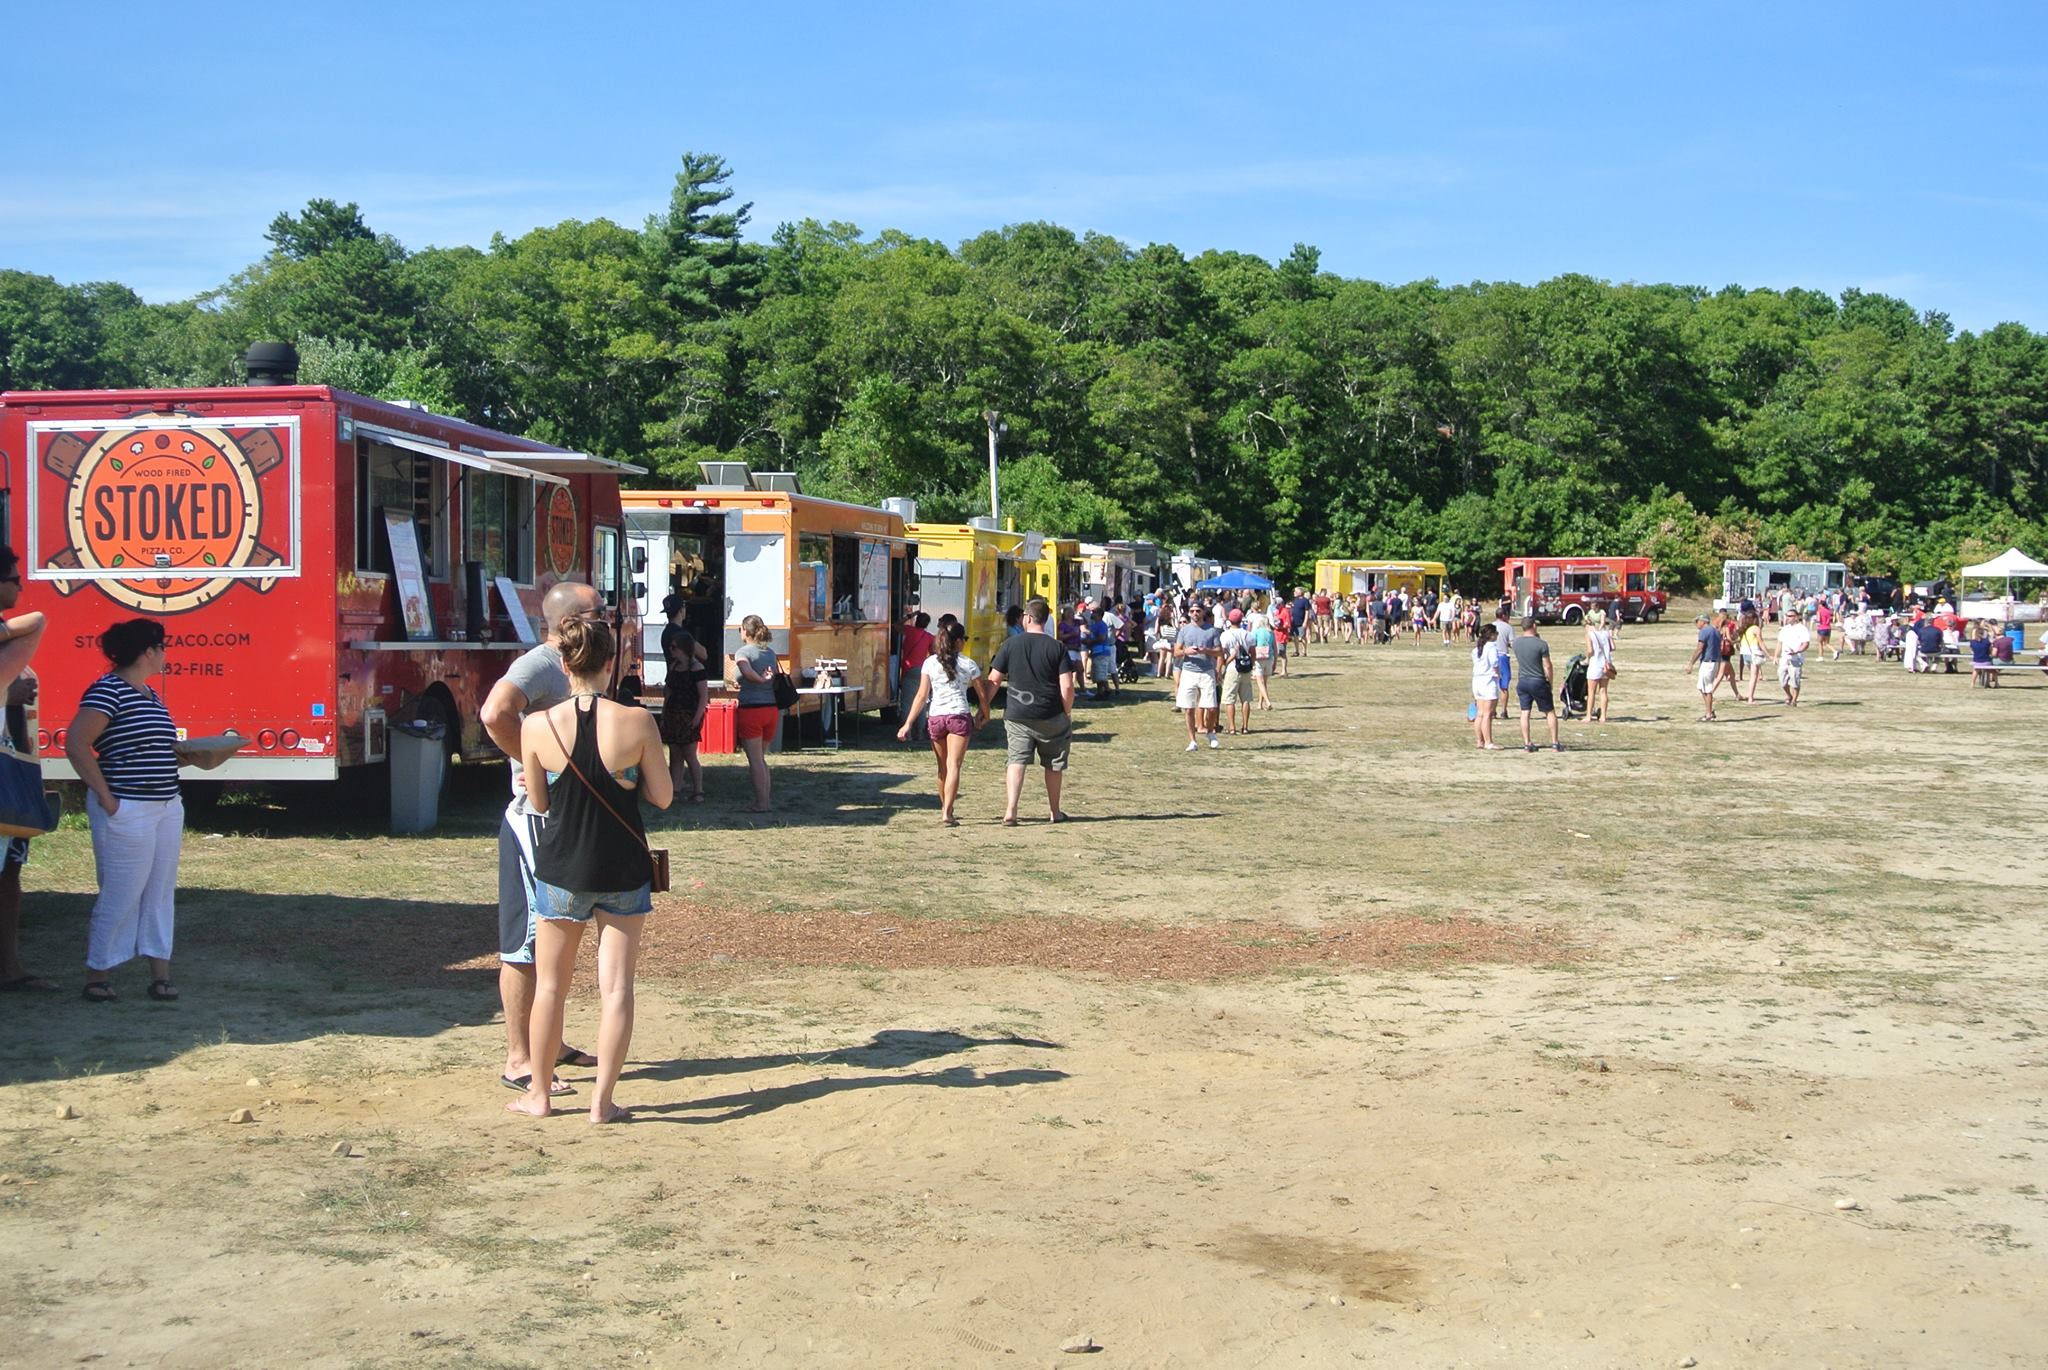 The 6th Annual Cape Cod Food Truck & Craft Beer Festival